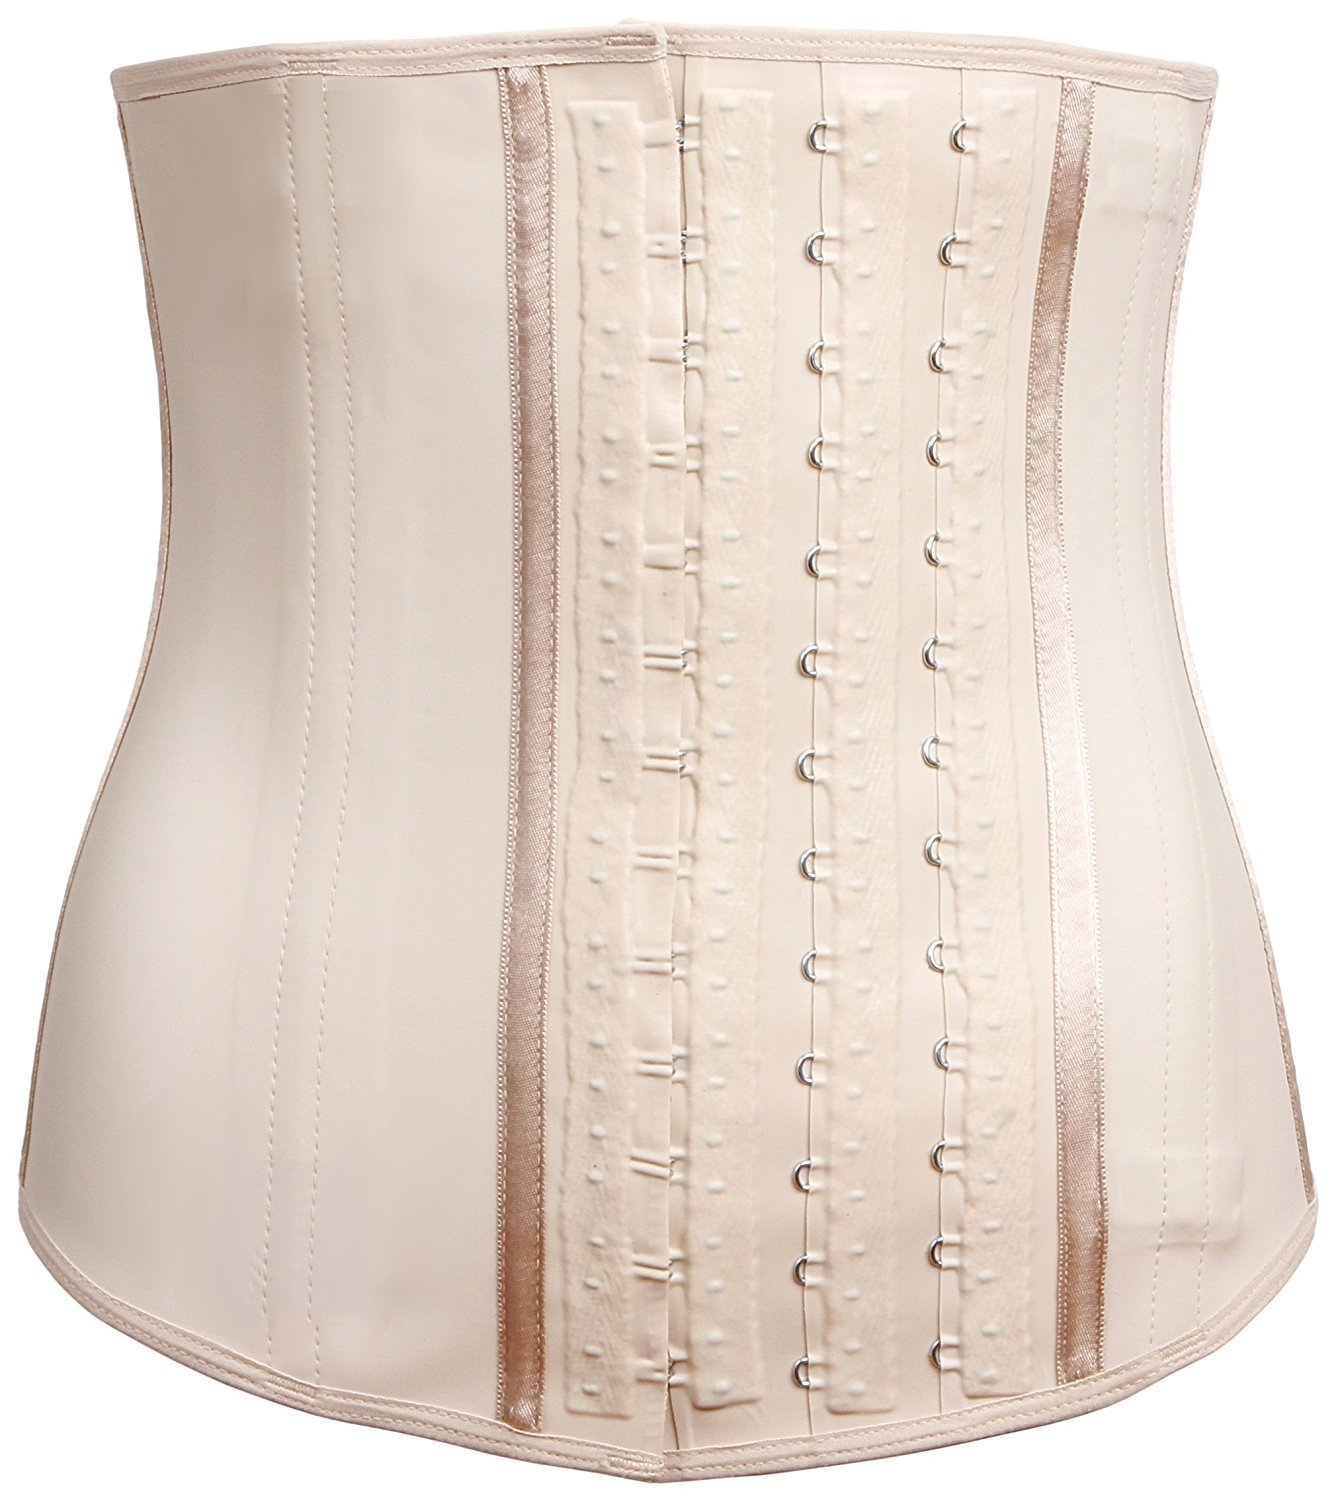 LadySlim by NuvoFit Fajas Colombiana Latex Waist Cincher/Trainer/Trimmer/Corset Weight Loss Shaper Beige XS by LadySlim by NuvoFit